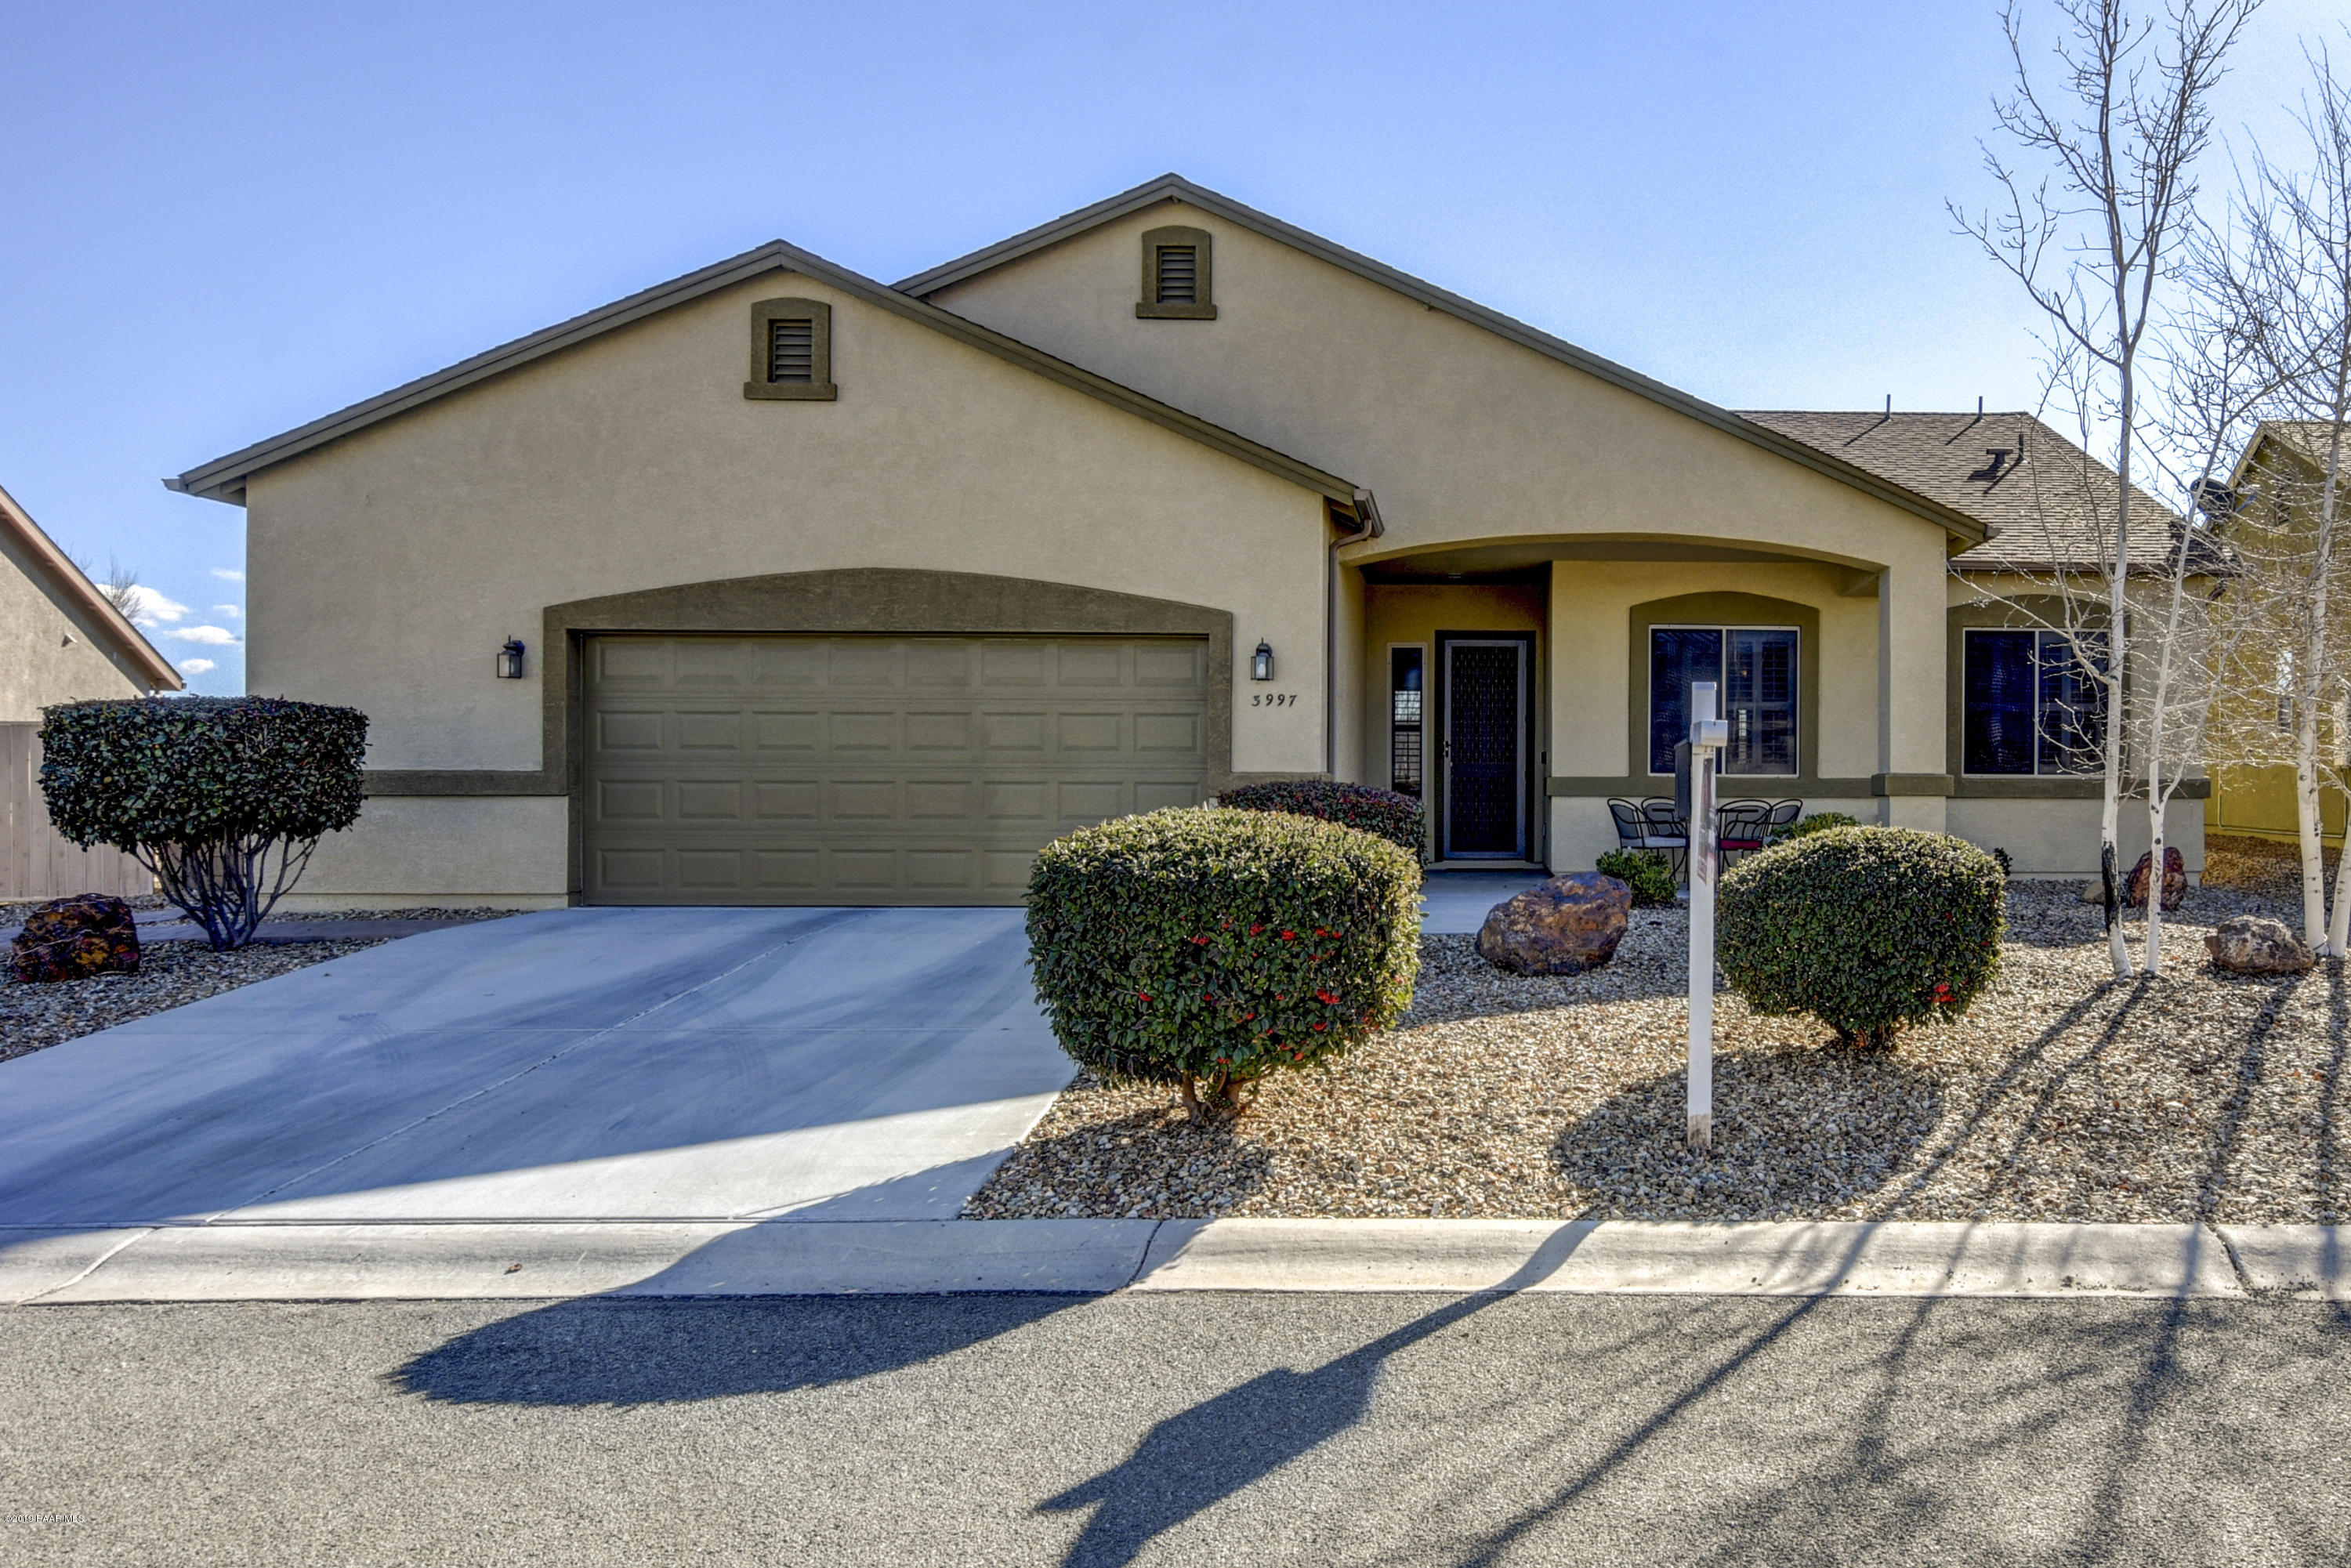 Photo of 3997 Fairfax, Prescott Valley, AZ 86314